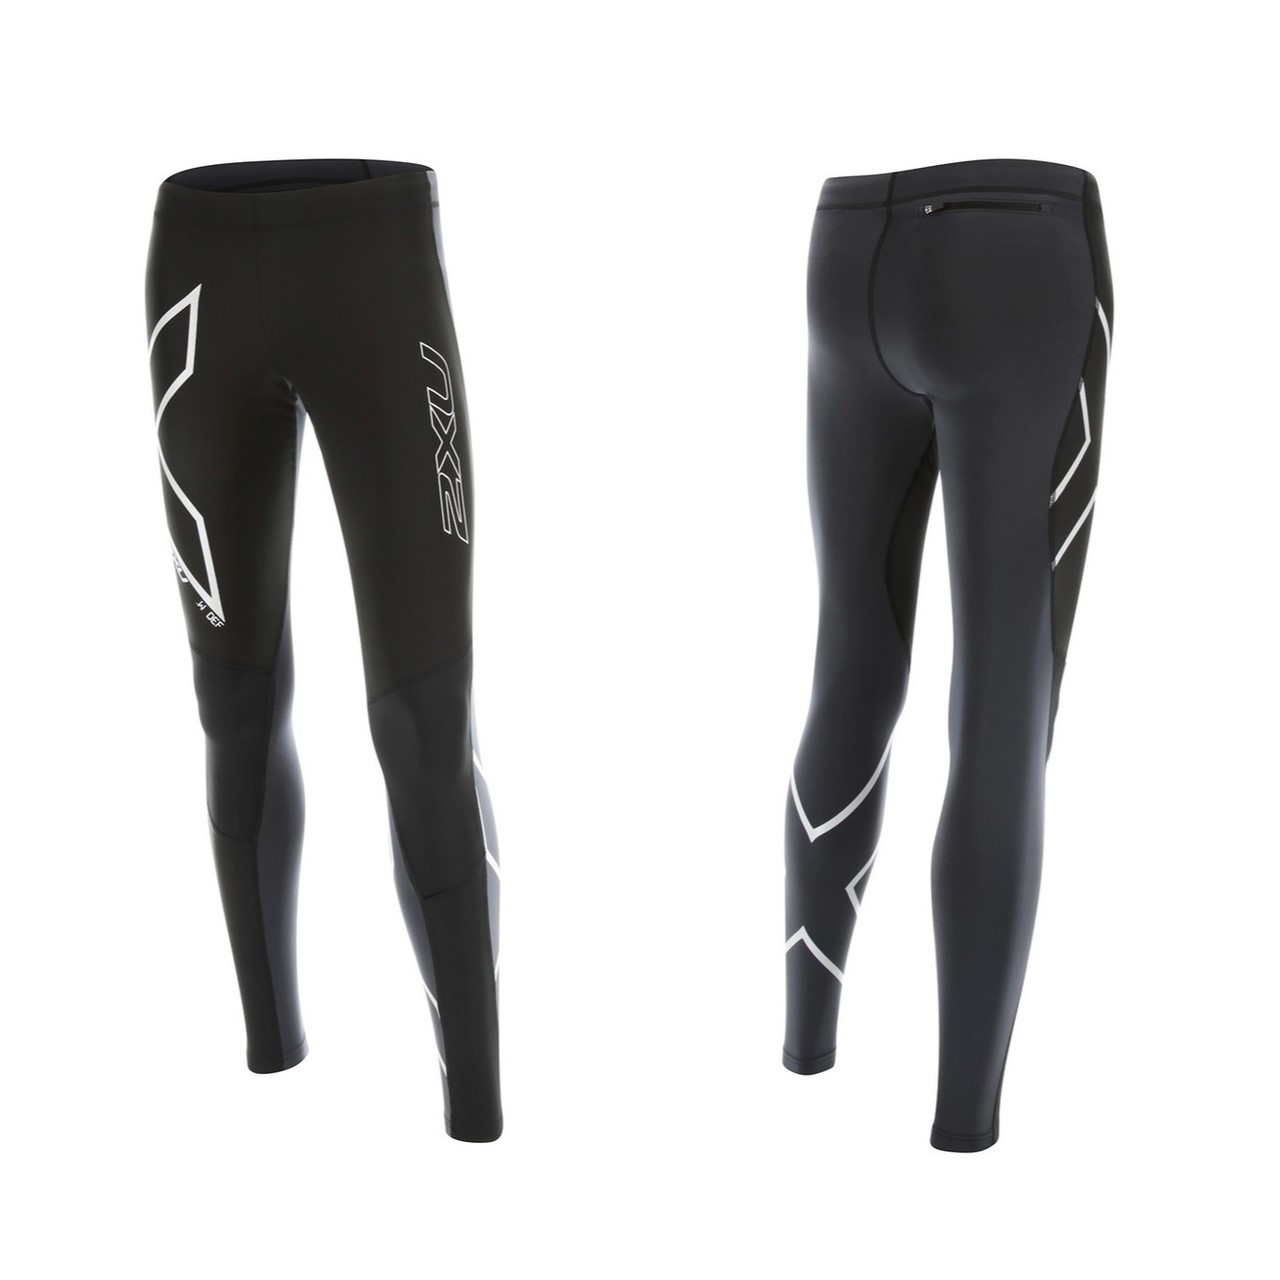 2XU Women's Wind Defence Compression Tight - 2018 price